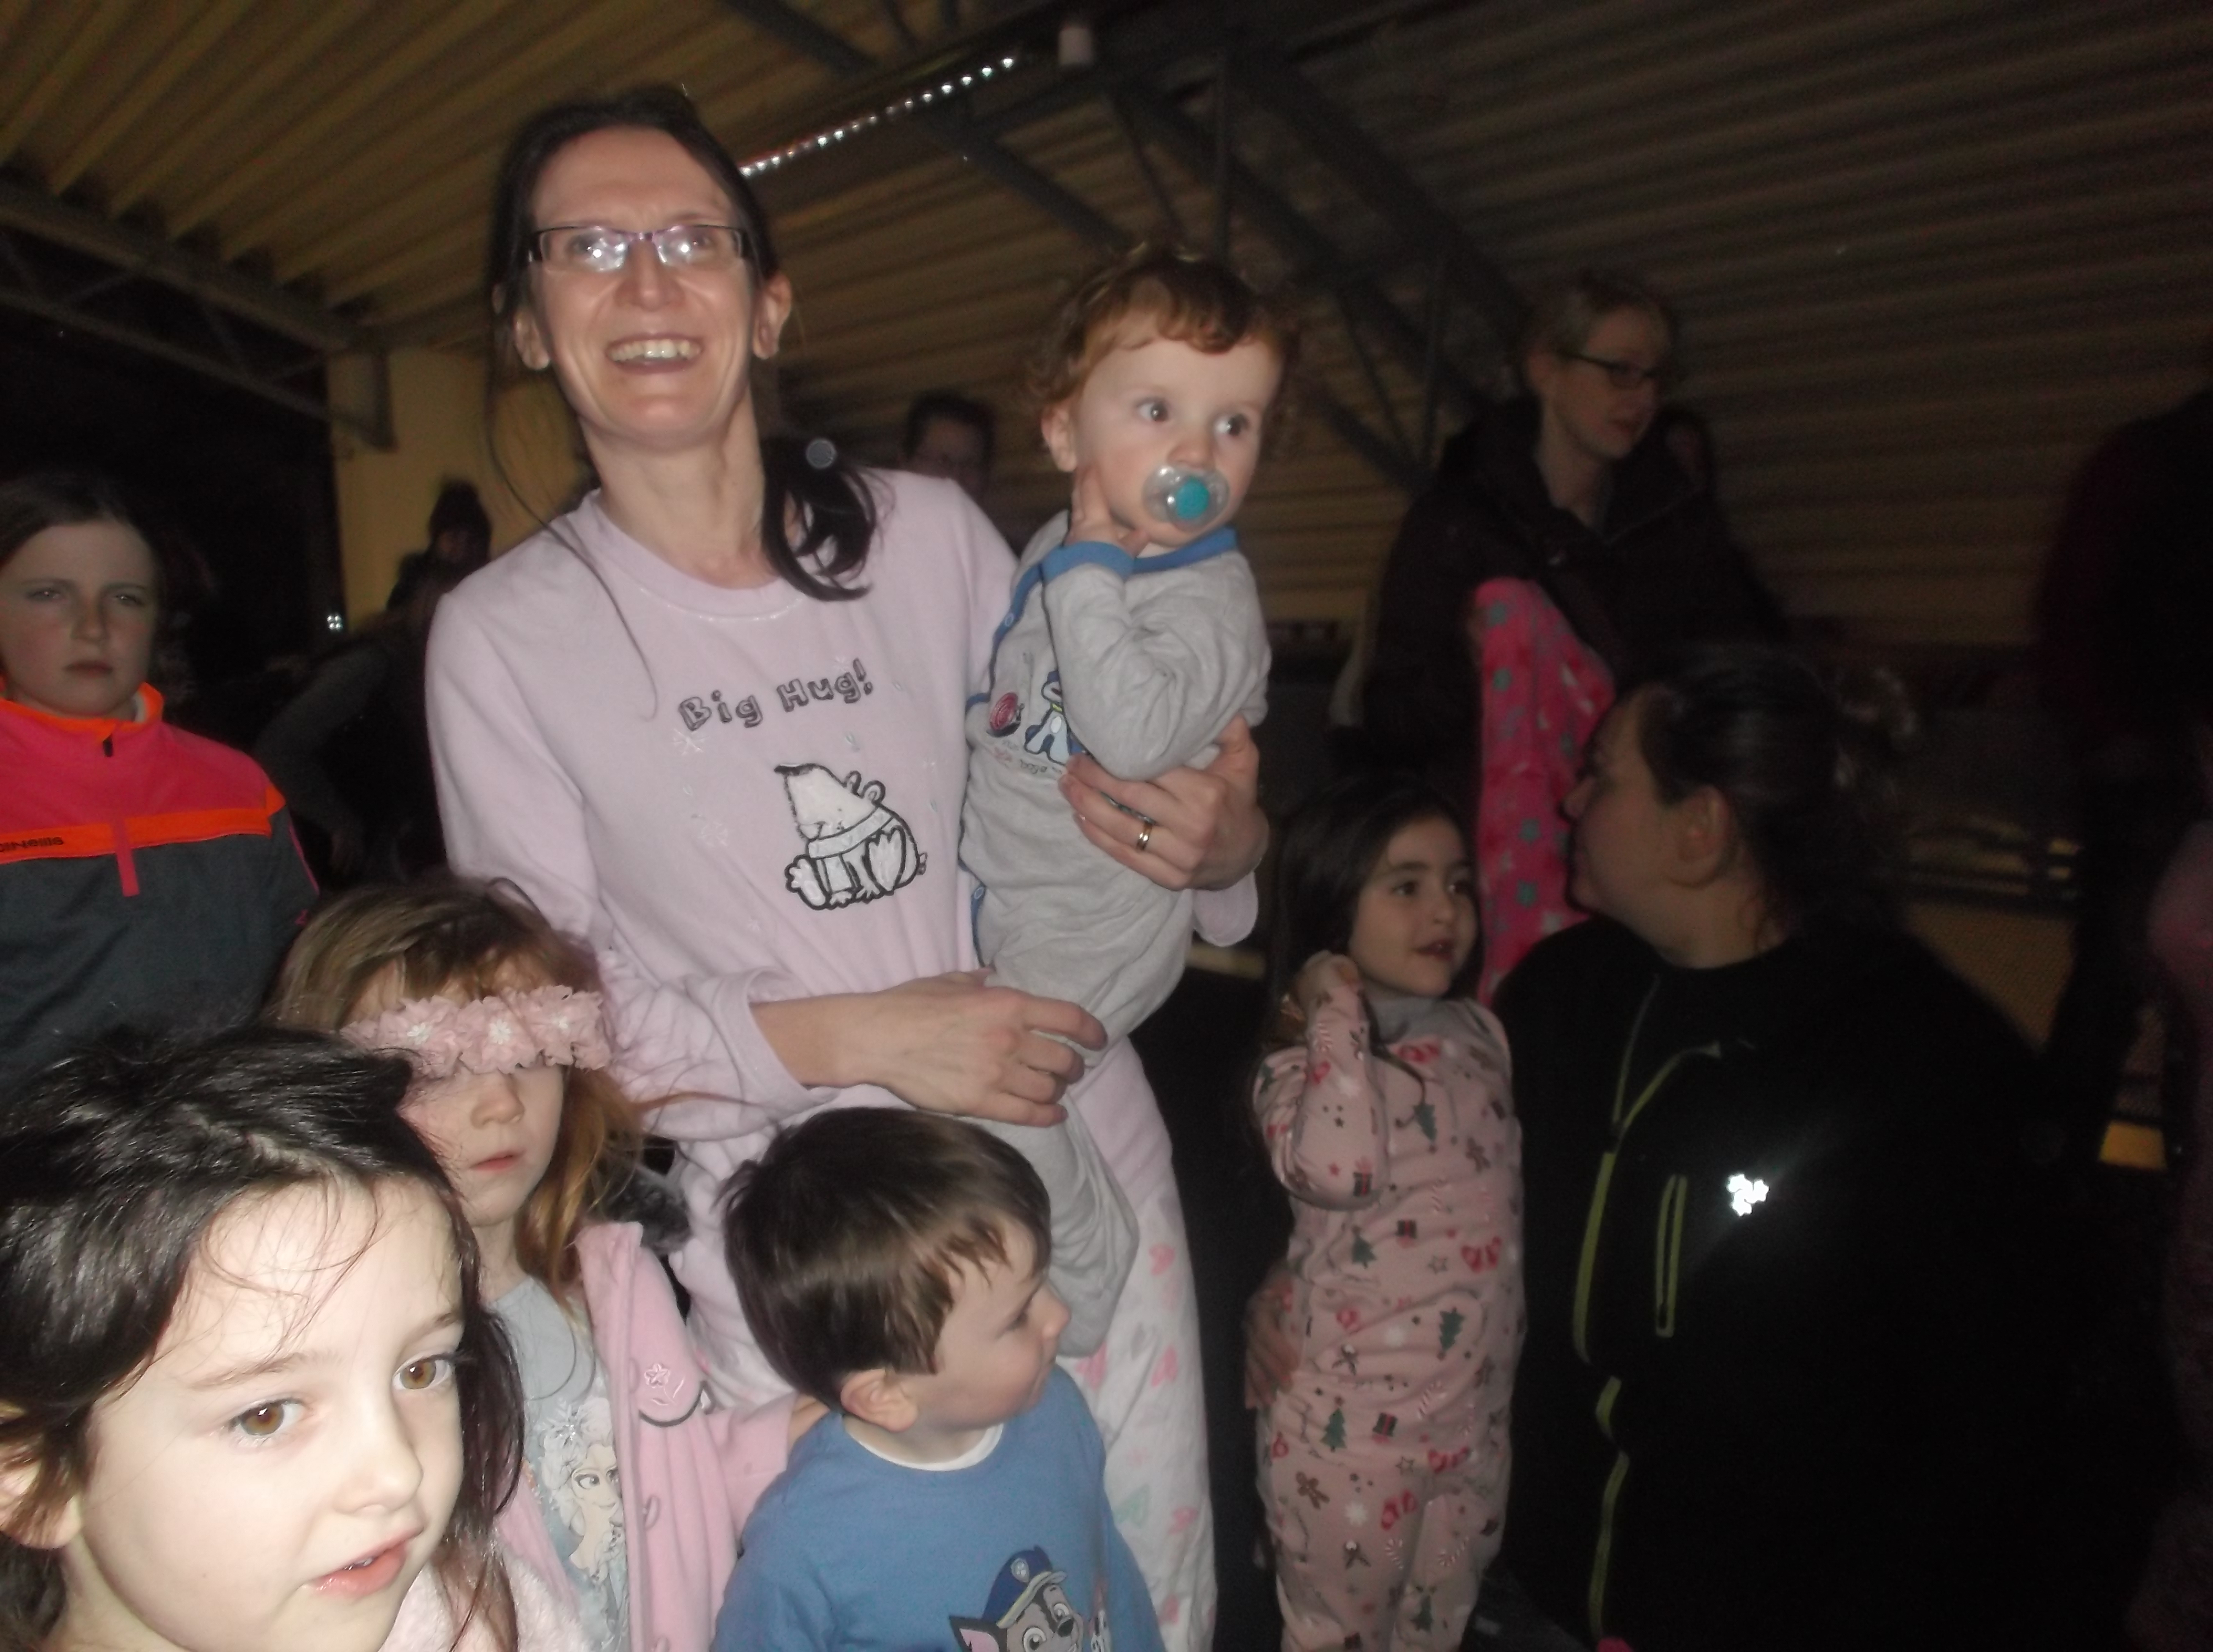 Cashel Christmas Pyjama Party And Storytime!